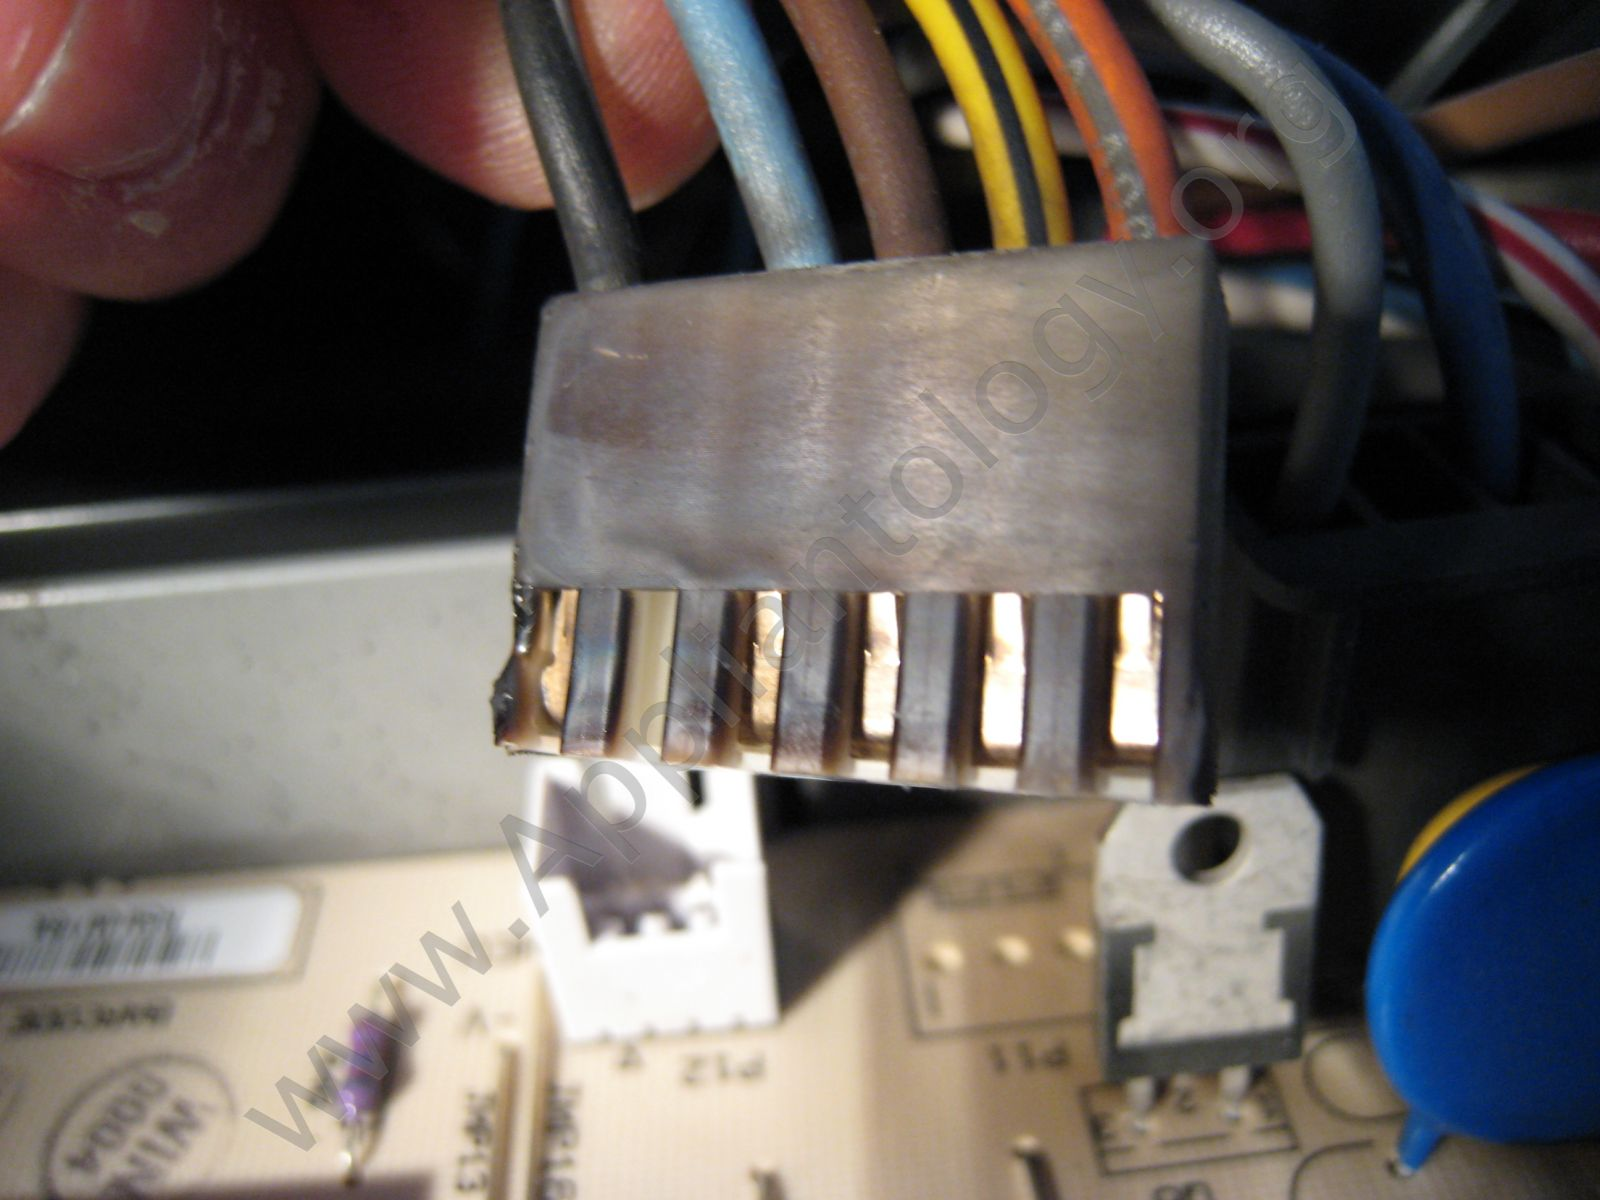 Back View Of The Wire Harness Connector That Caused Problem Wiring Repair Kitchenaid Dishwasher Control Board